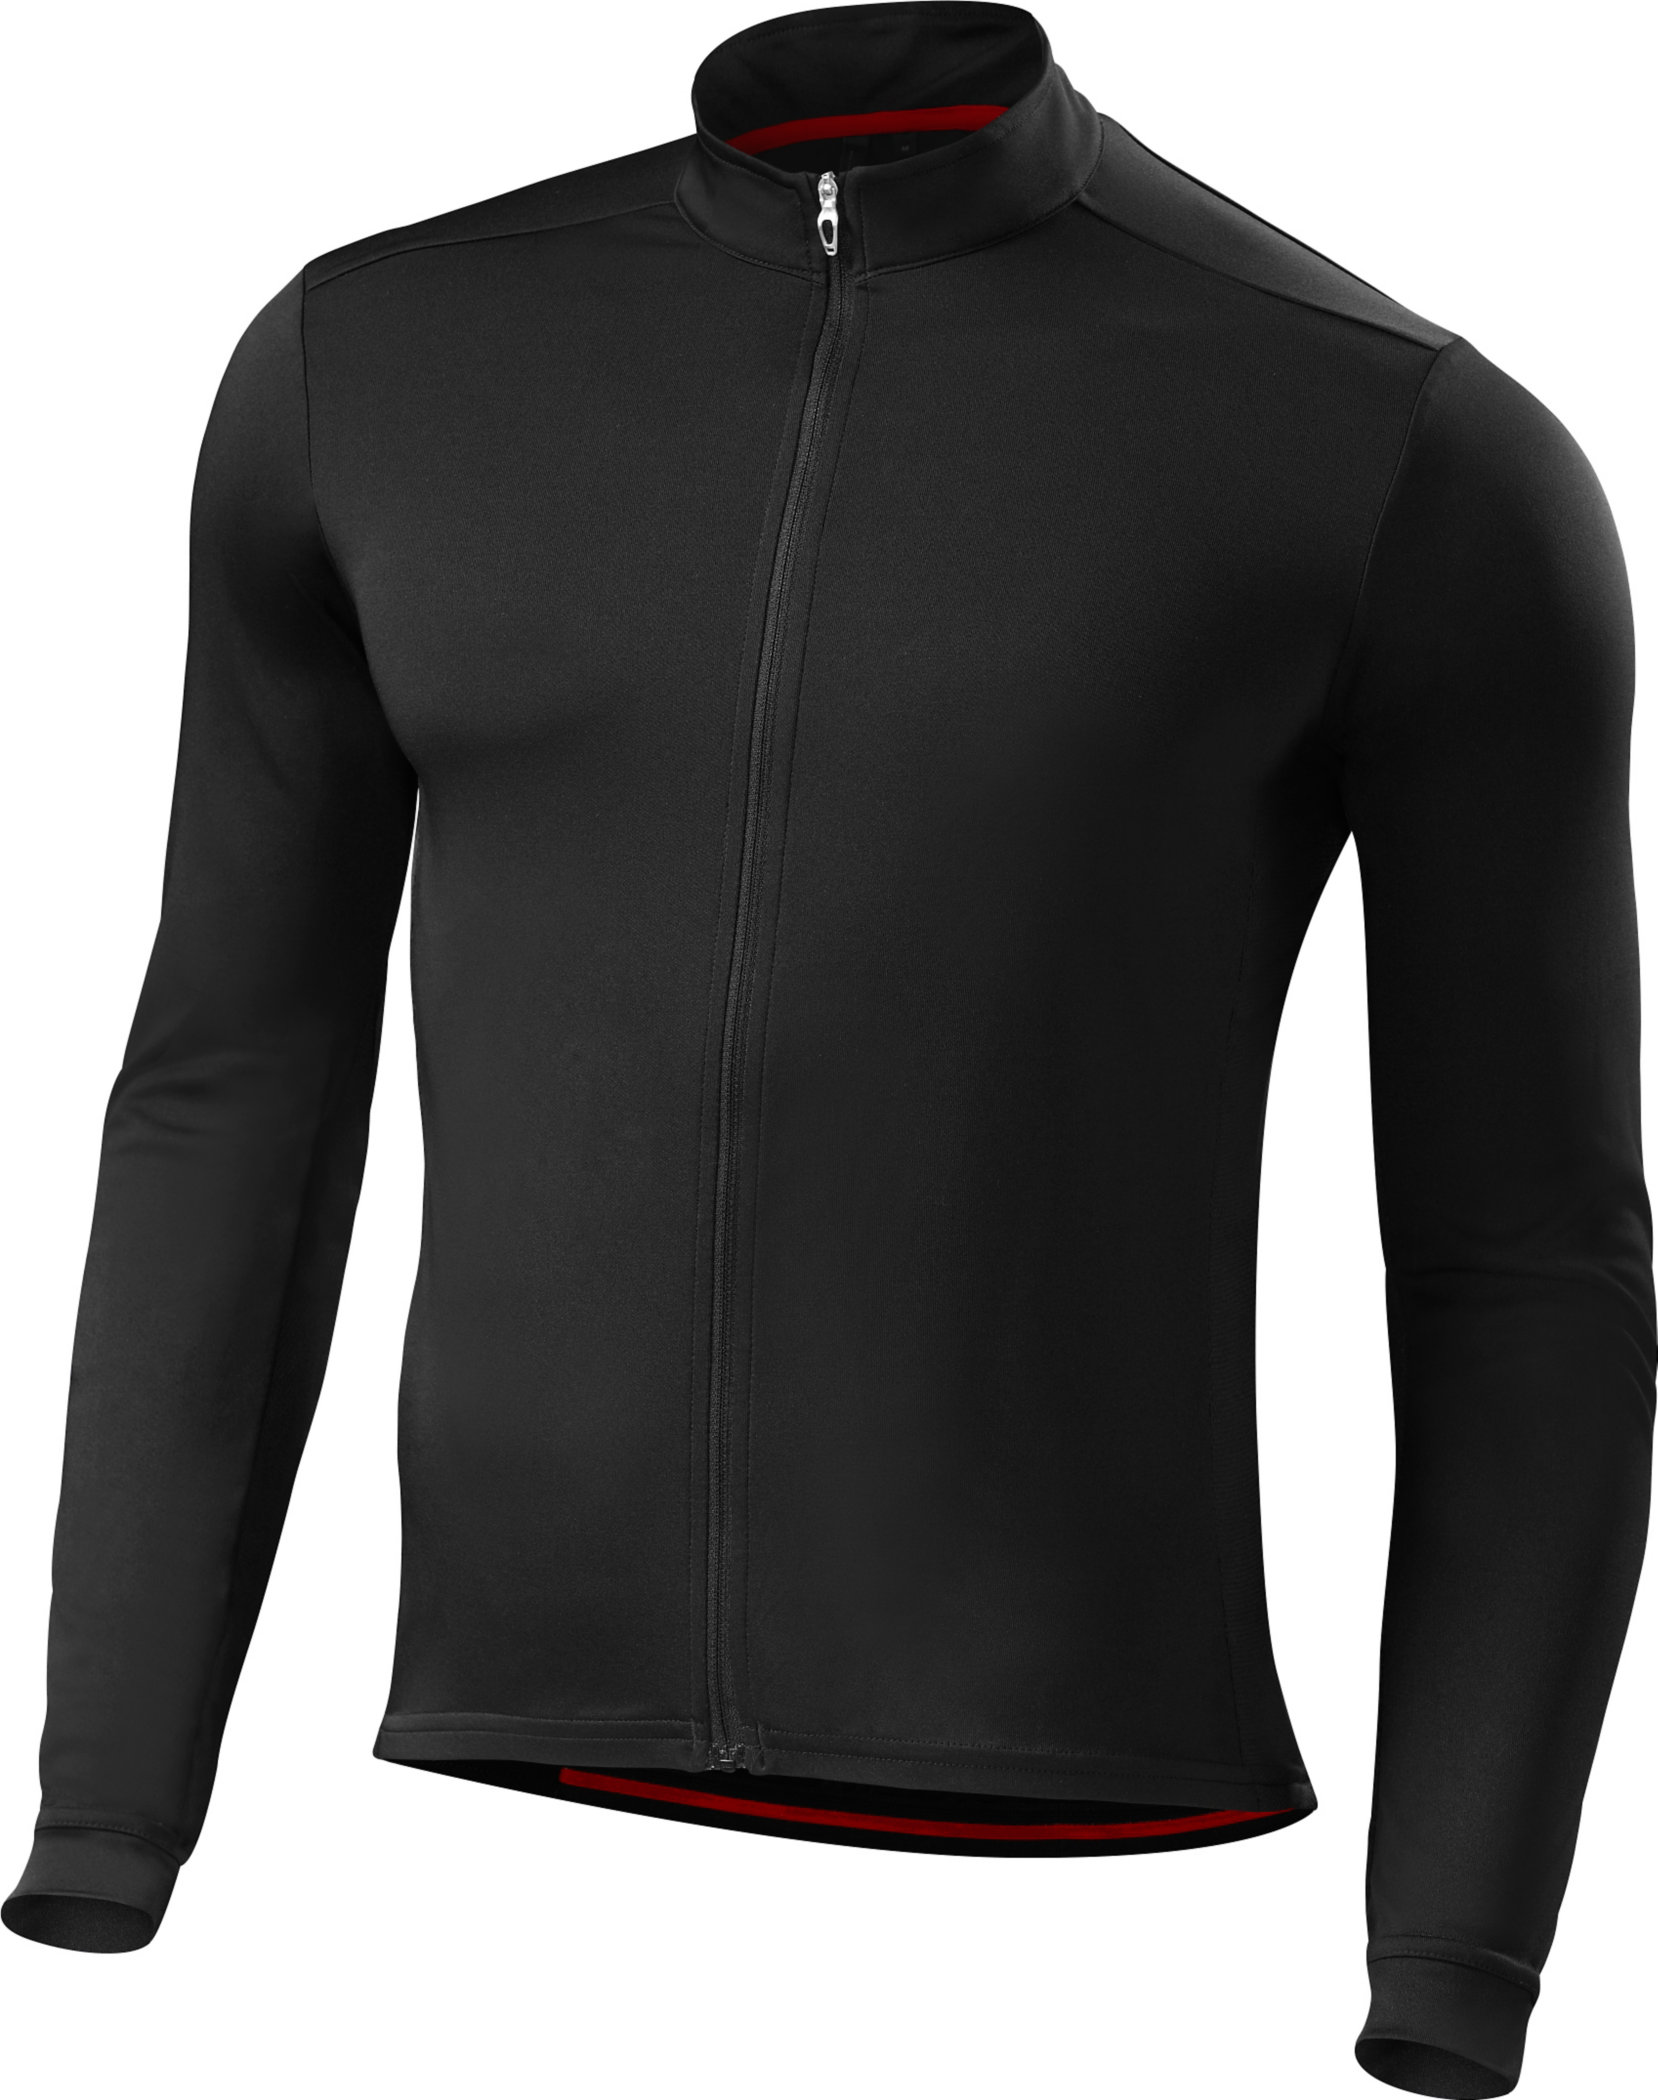 Specialized RBX Sport Long Sleeve Jersey Black Small - Alpha Bikes